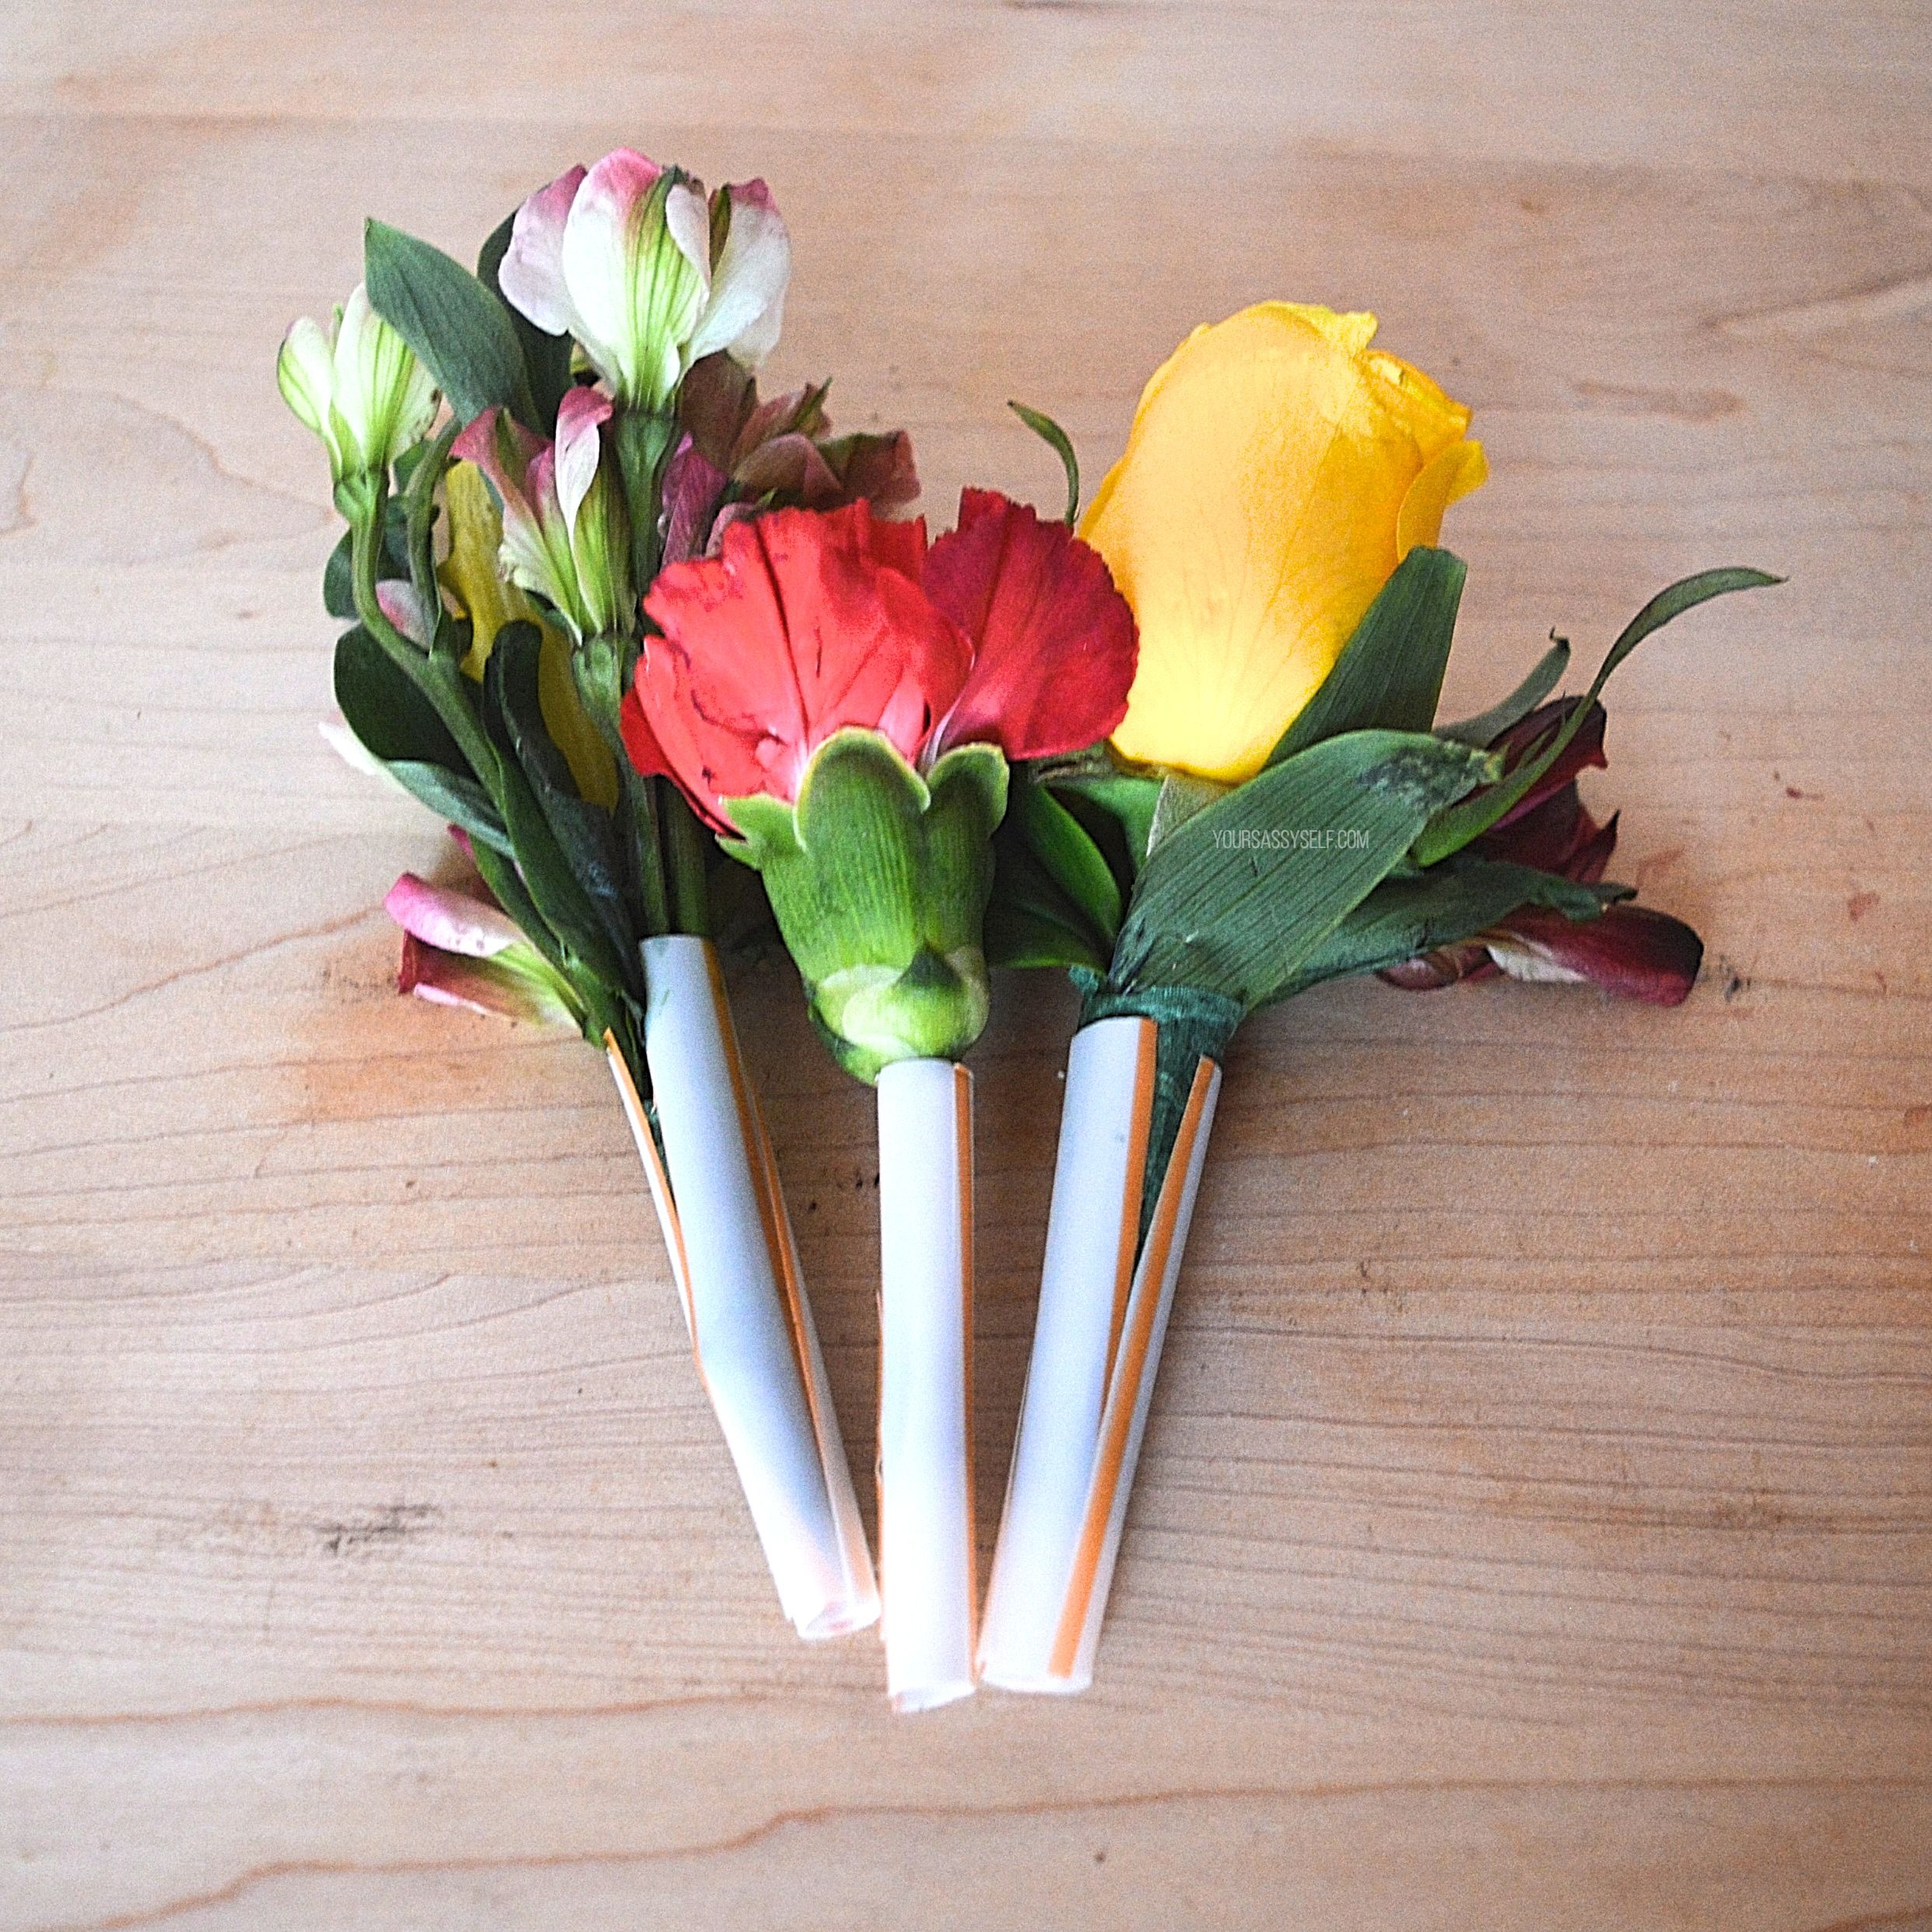 Summer flowers inside drinking straws - yoursassyself.com